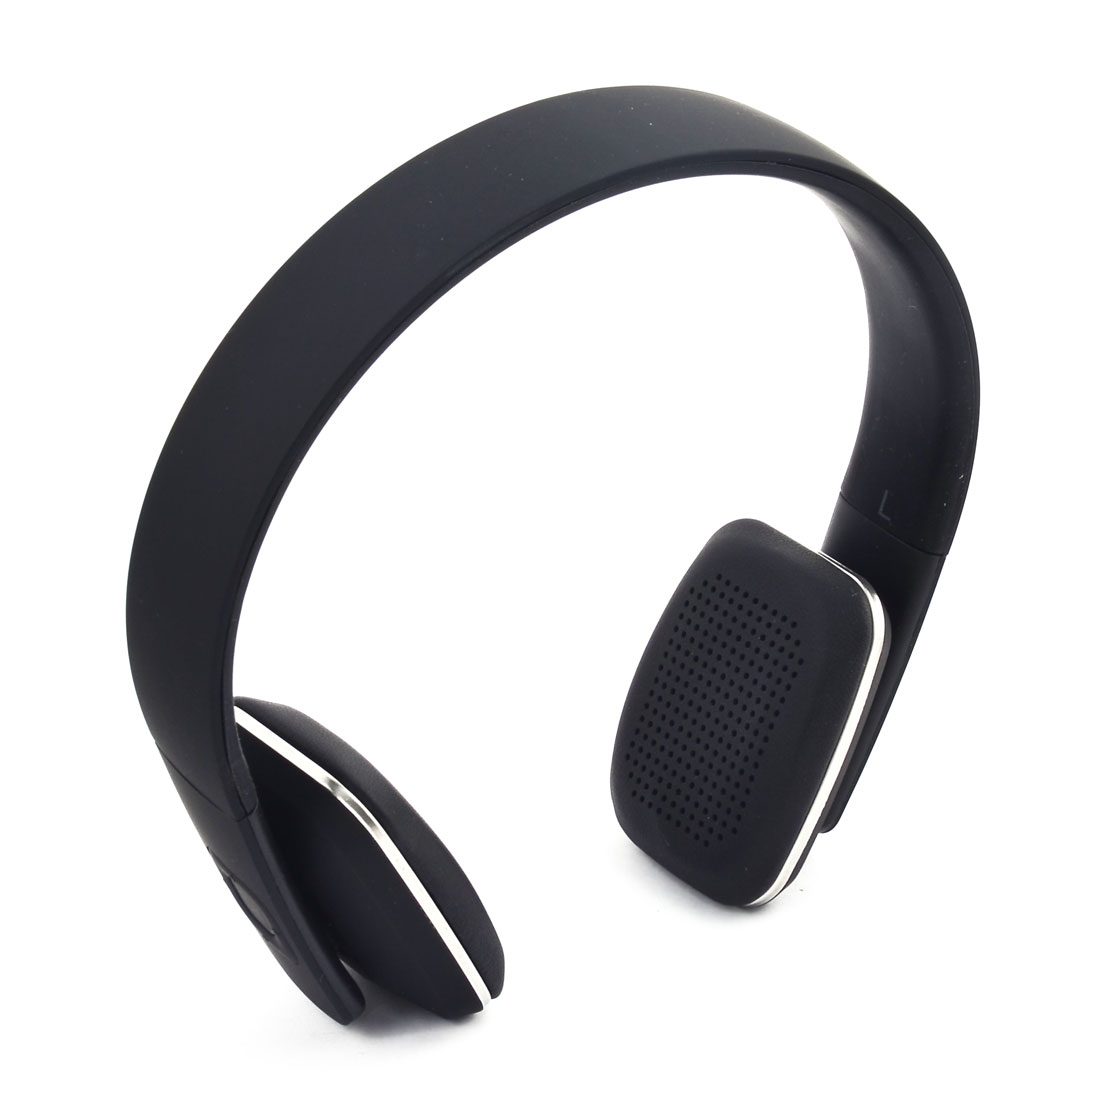 Home Tablet Noise Reduction Stereo Wireless Headphones Headset Black